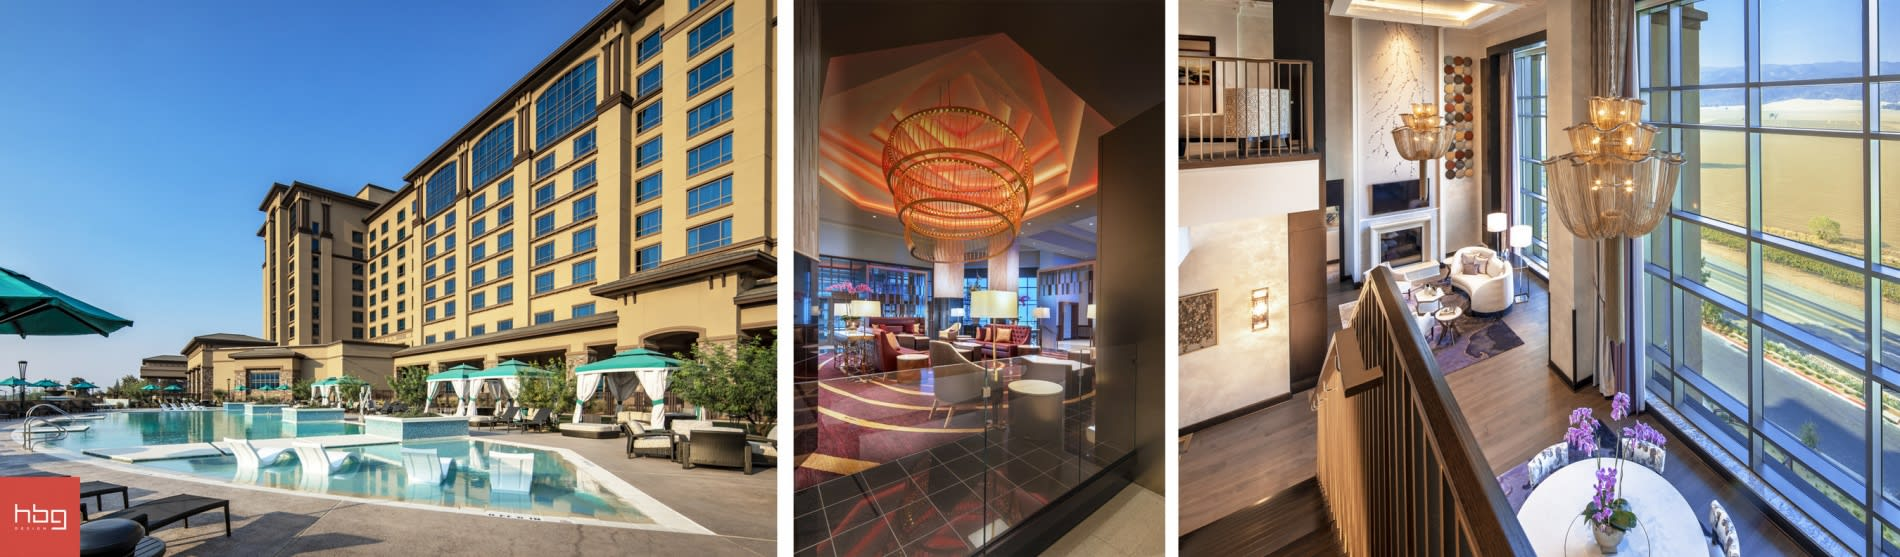 New Cache Creek Casino Resort Hotel stuns with beauty inspired by Northern California's alluring Capay Valley